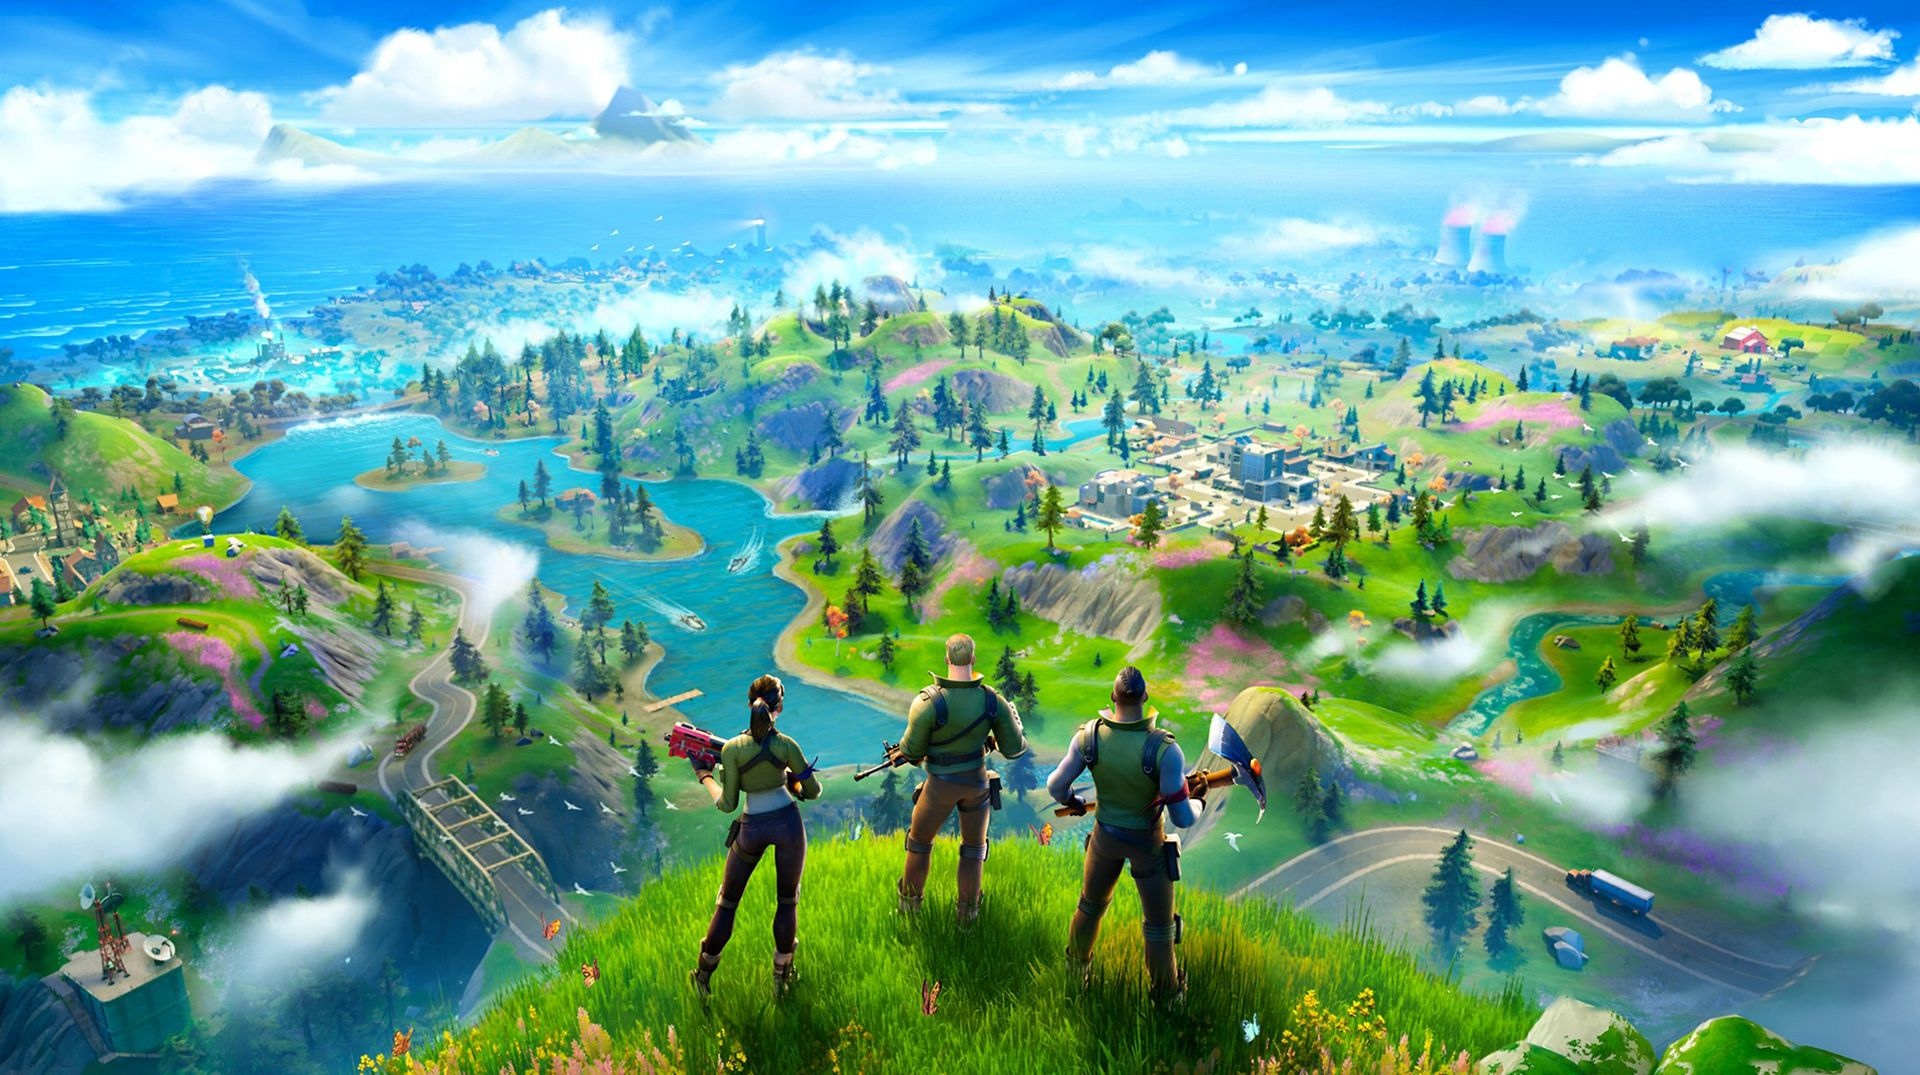 Fortnite Battle Royale Chapter 2 Wallpapers Top Free Fortnite Battle Royale Chapter 2 Backgrounds Wallpaperaccess